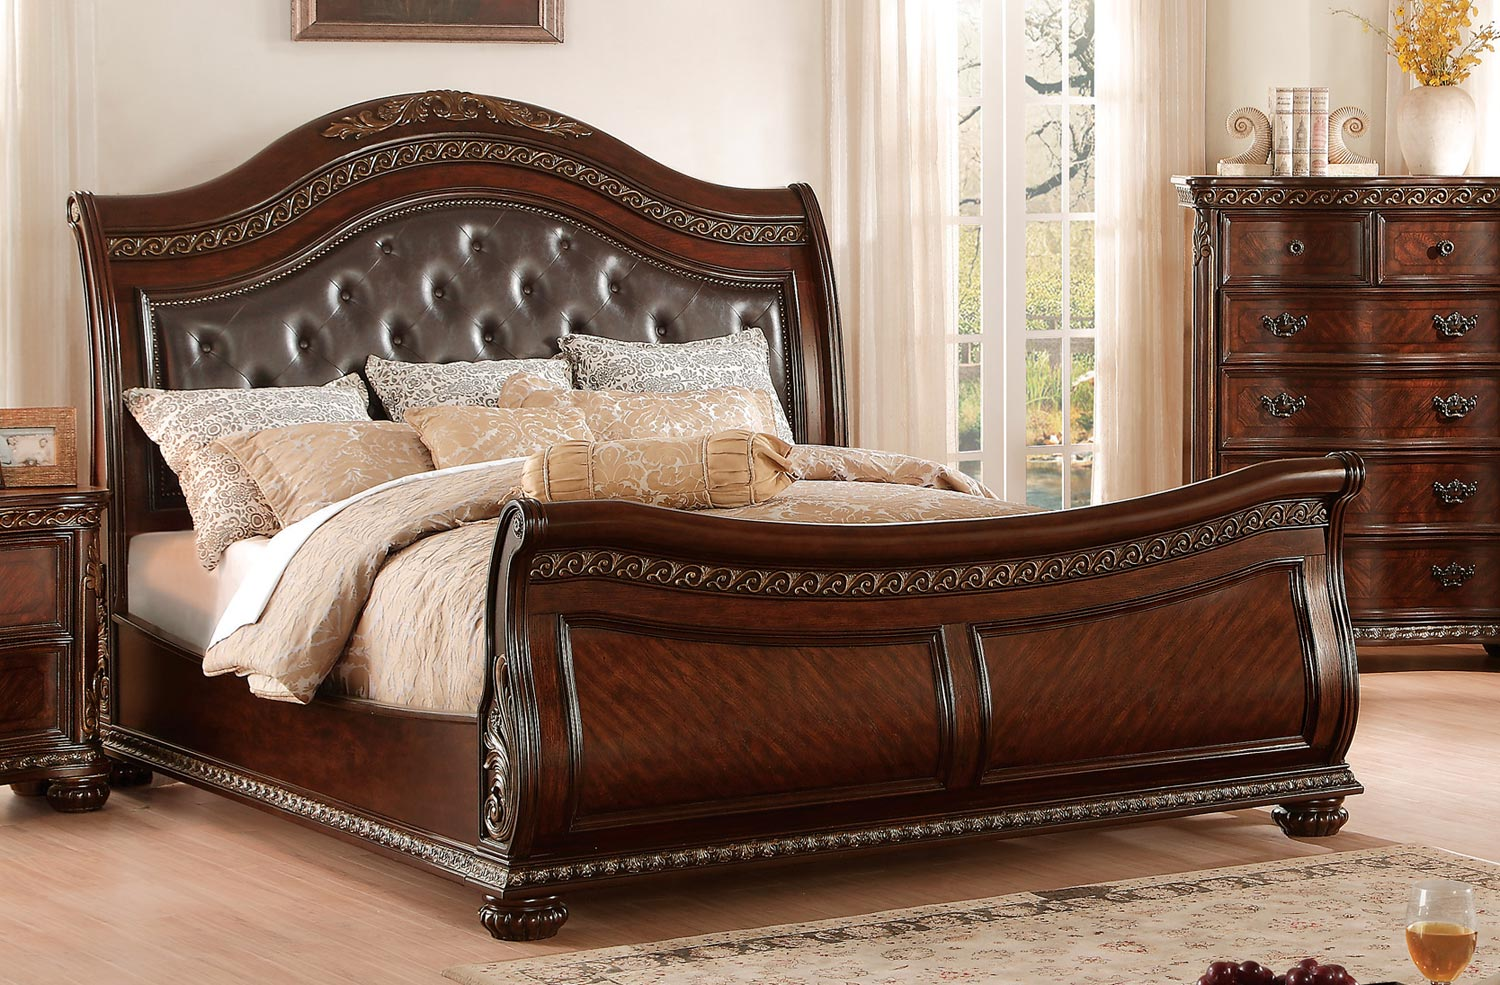 Homelegance Chaumont Upholstered Sleigh Bed - Burnished Brown Cherry